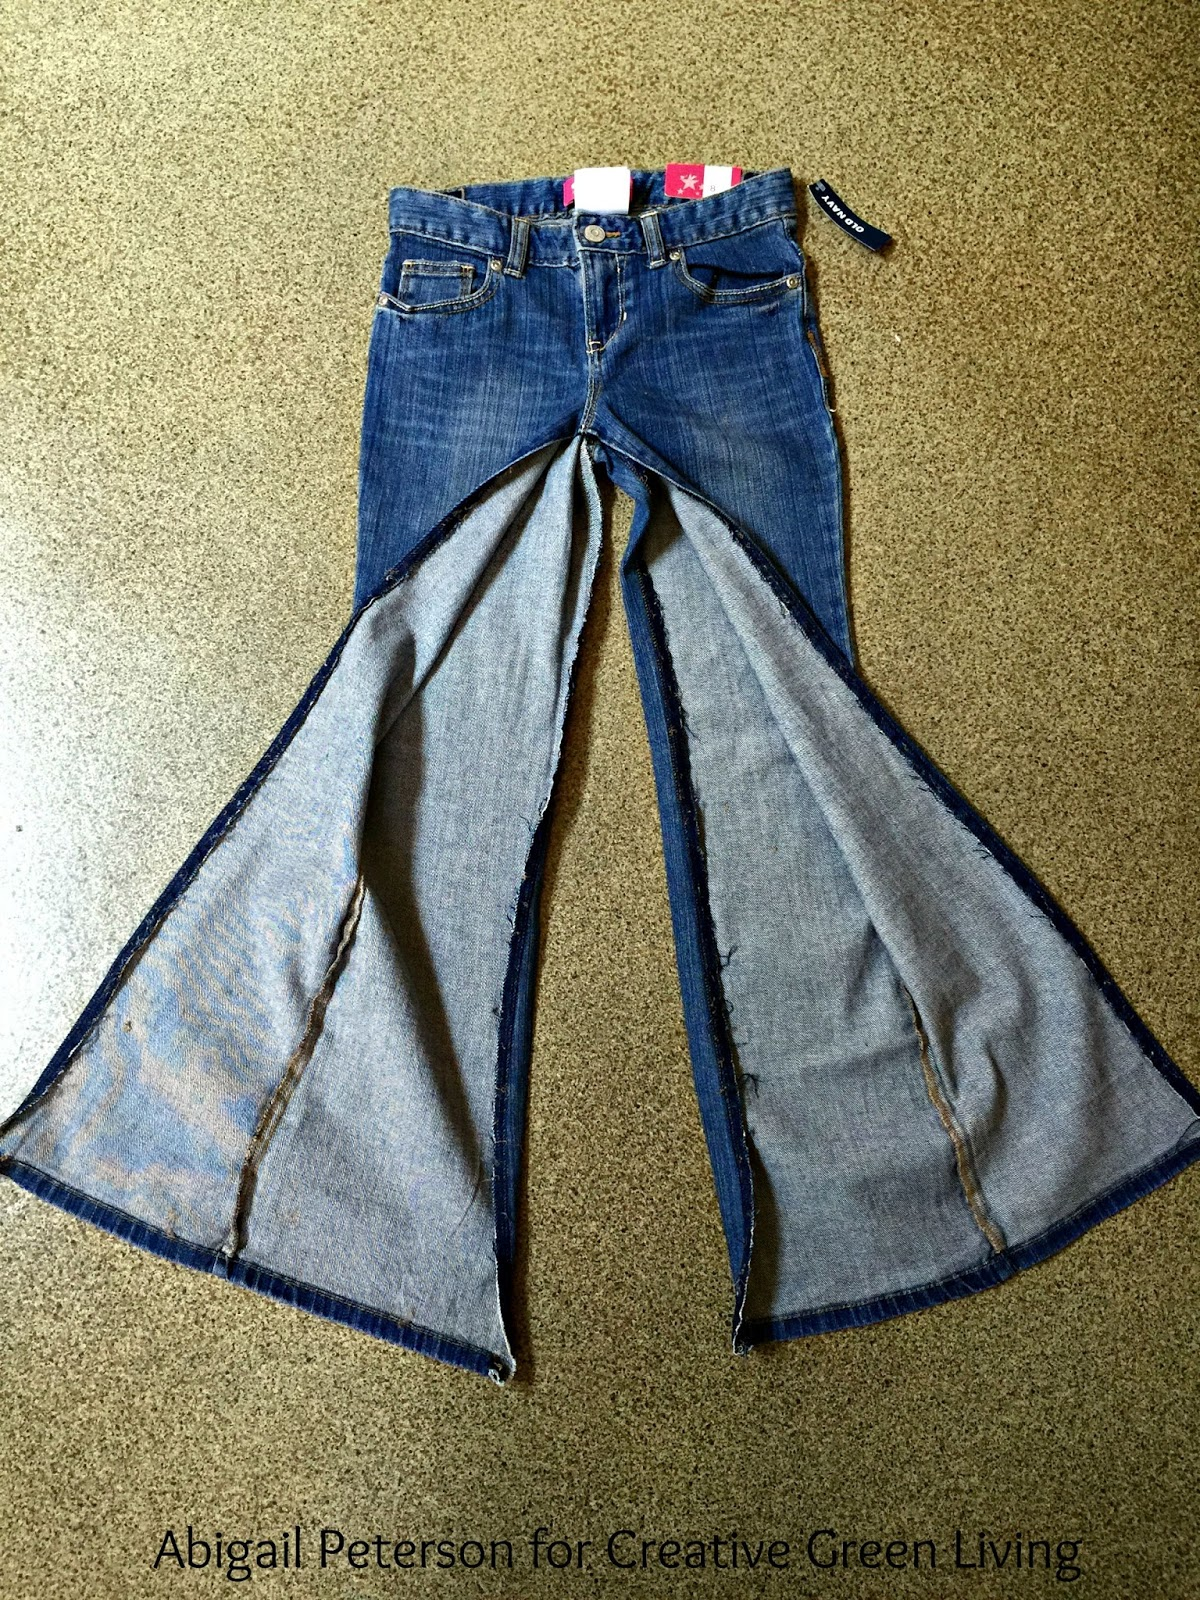 How to Make a Skirt from an Old Pair of Jeans - Creative Green Living